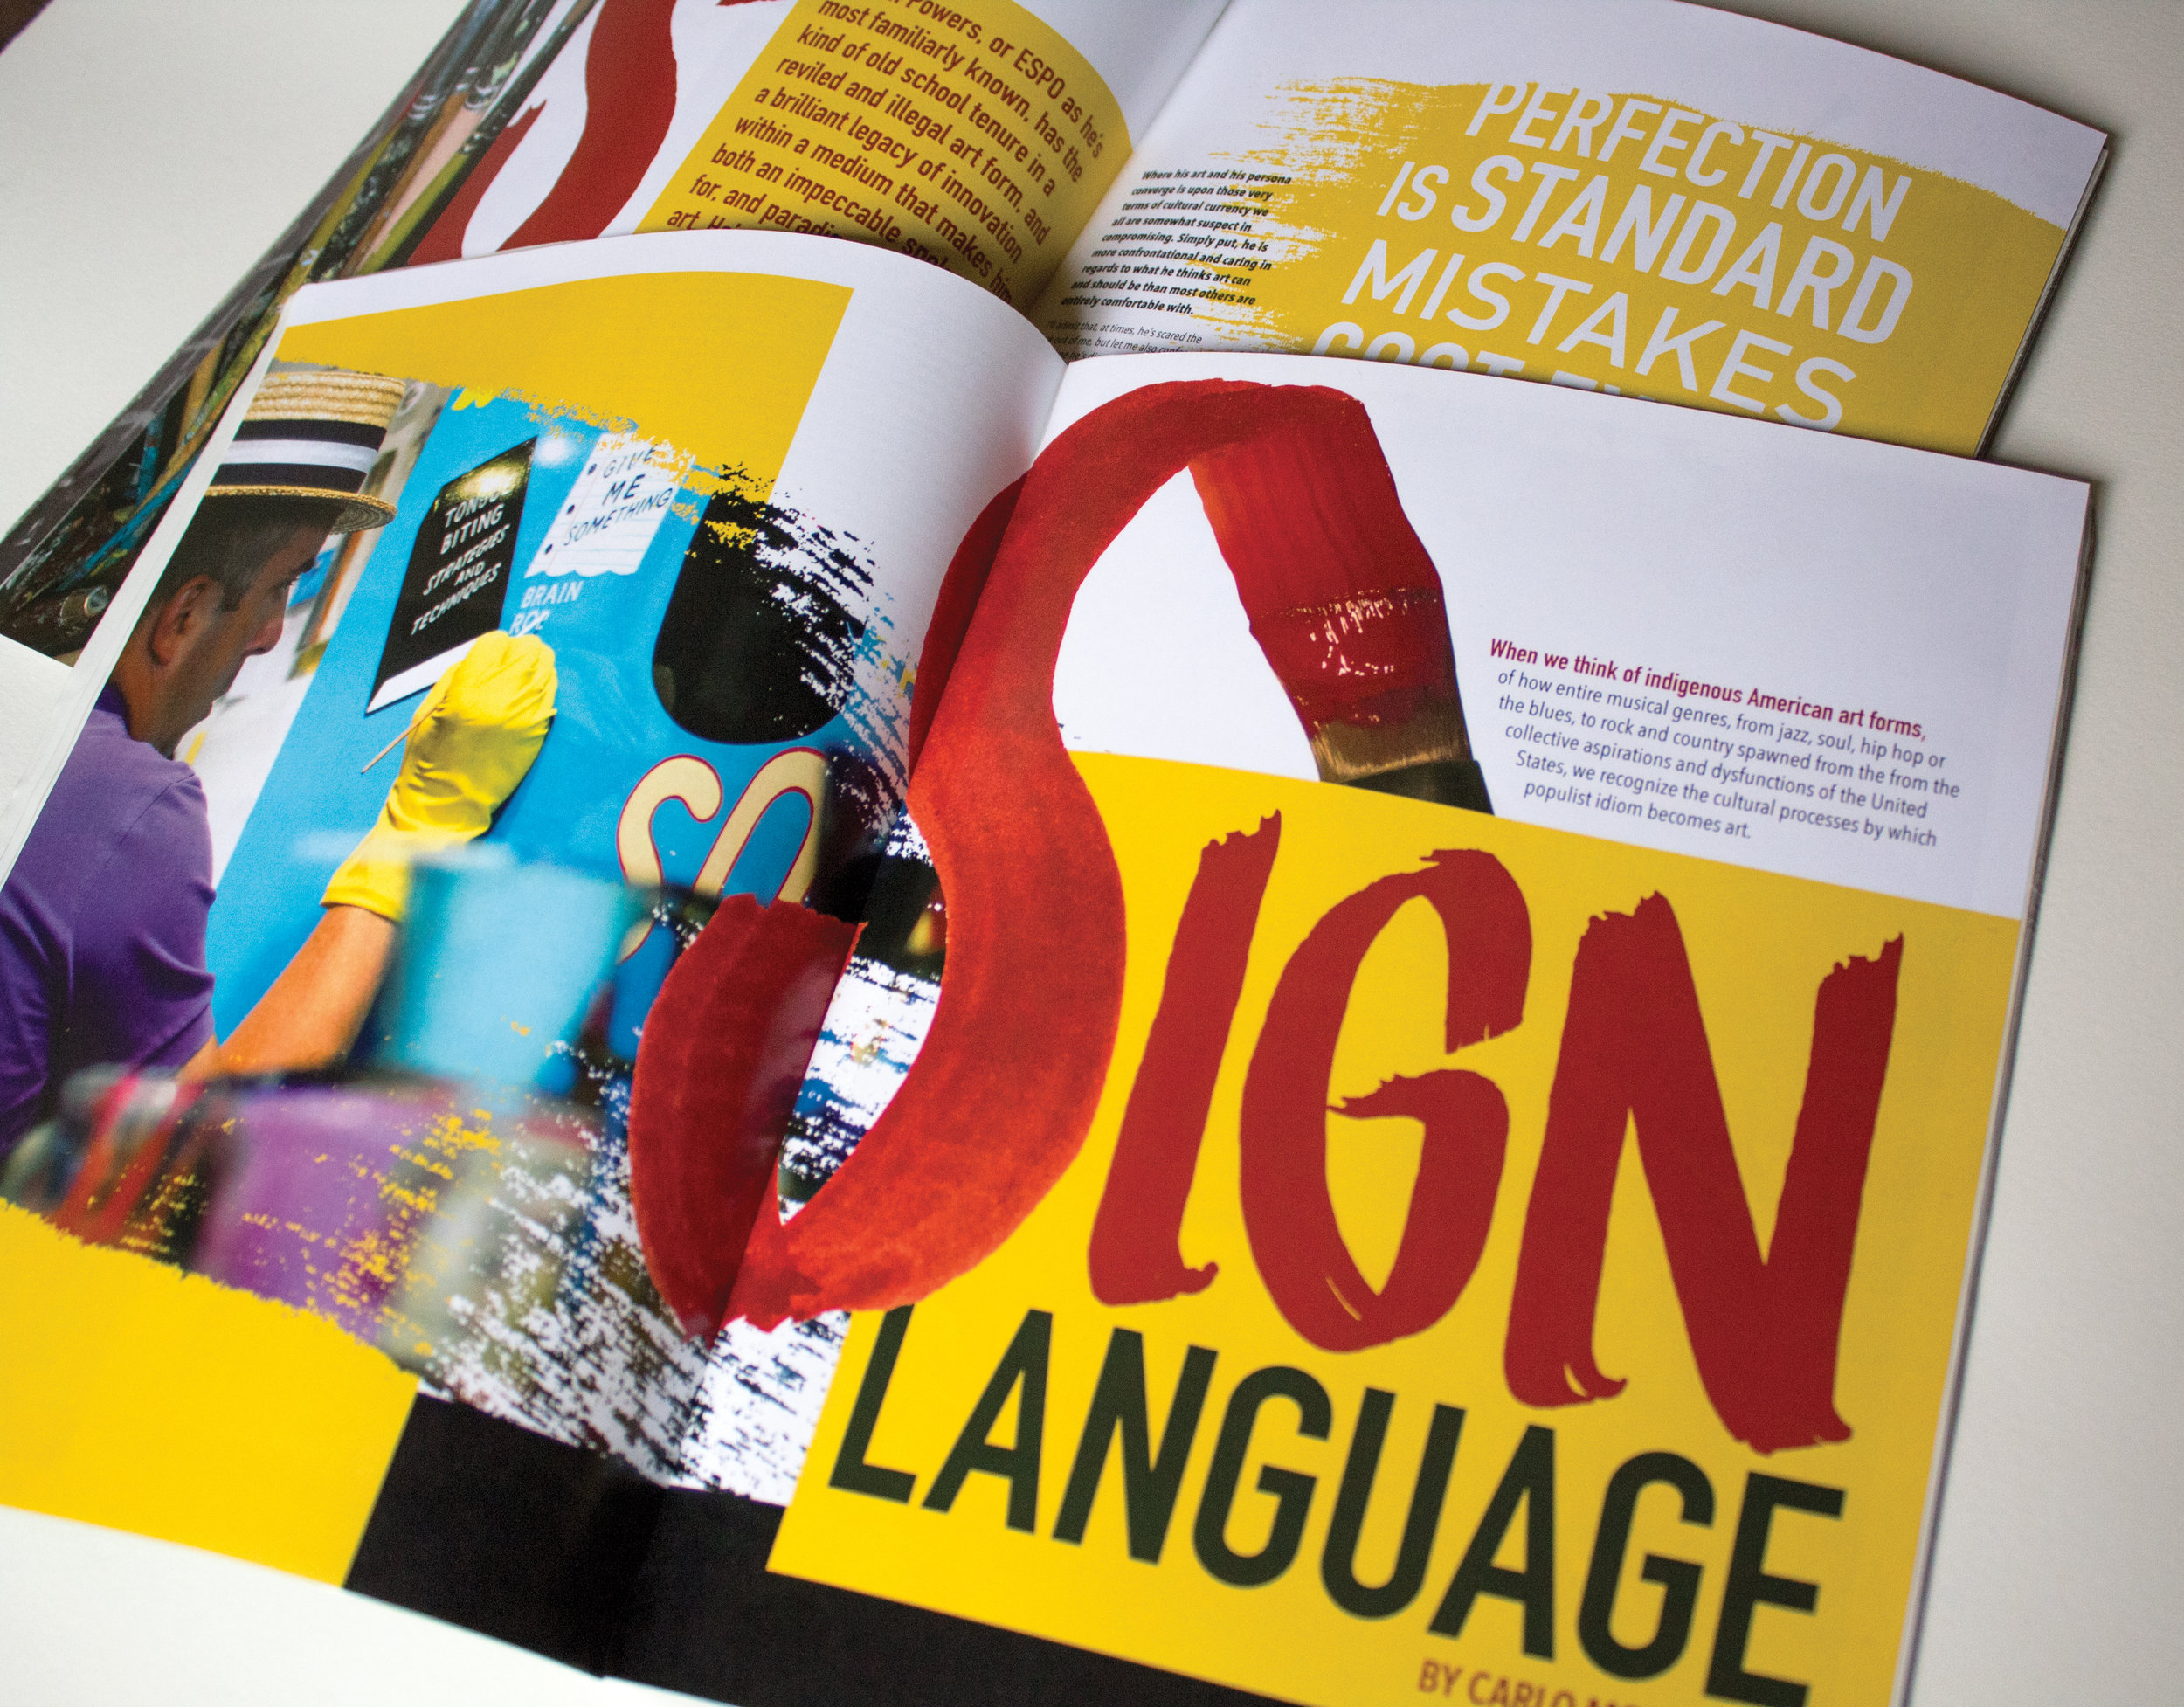 Sign Language - Magazine spread geared towards creatives supporting an article about hand-painted signs. Life-size imagery and exaggerated textures convey a hands-on, behind the scenes, experience.